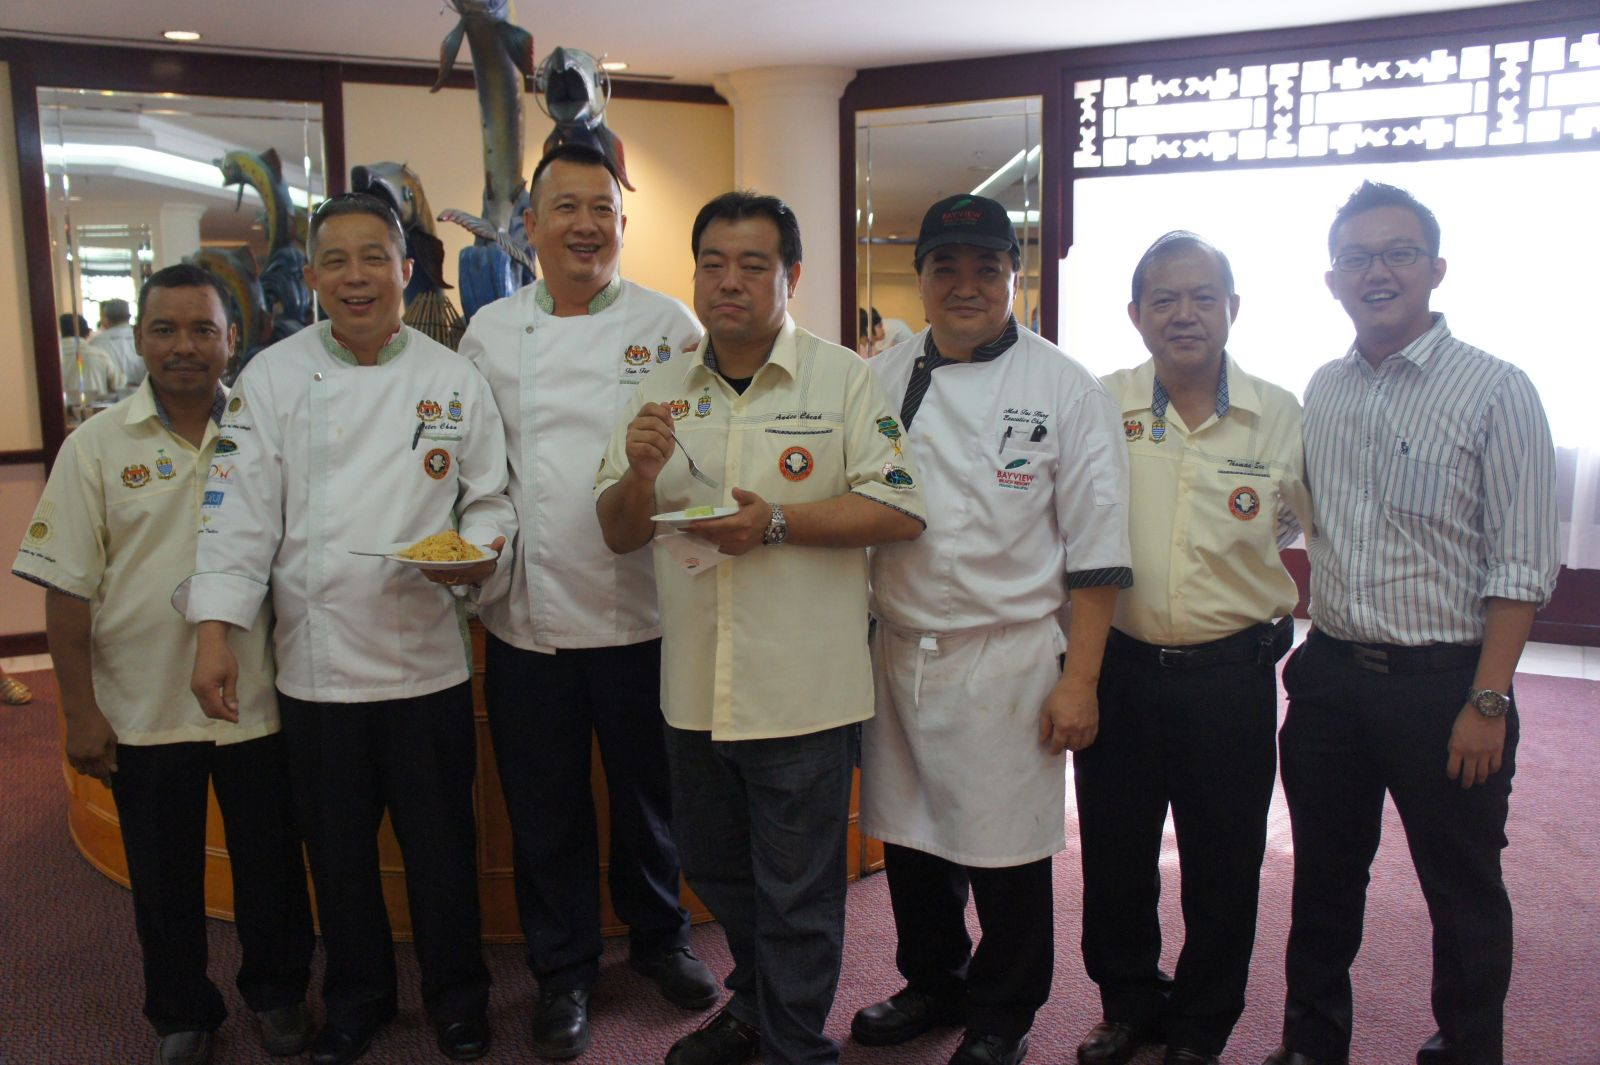 GST Group & Chef Penang Association